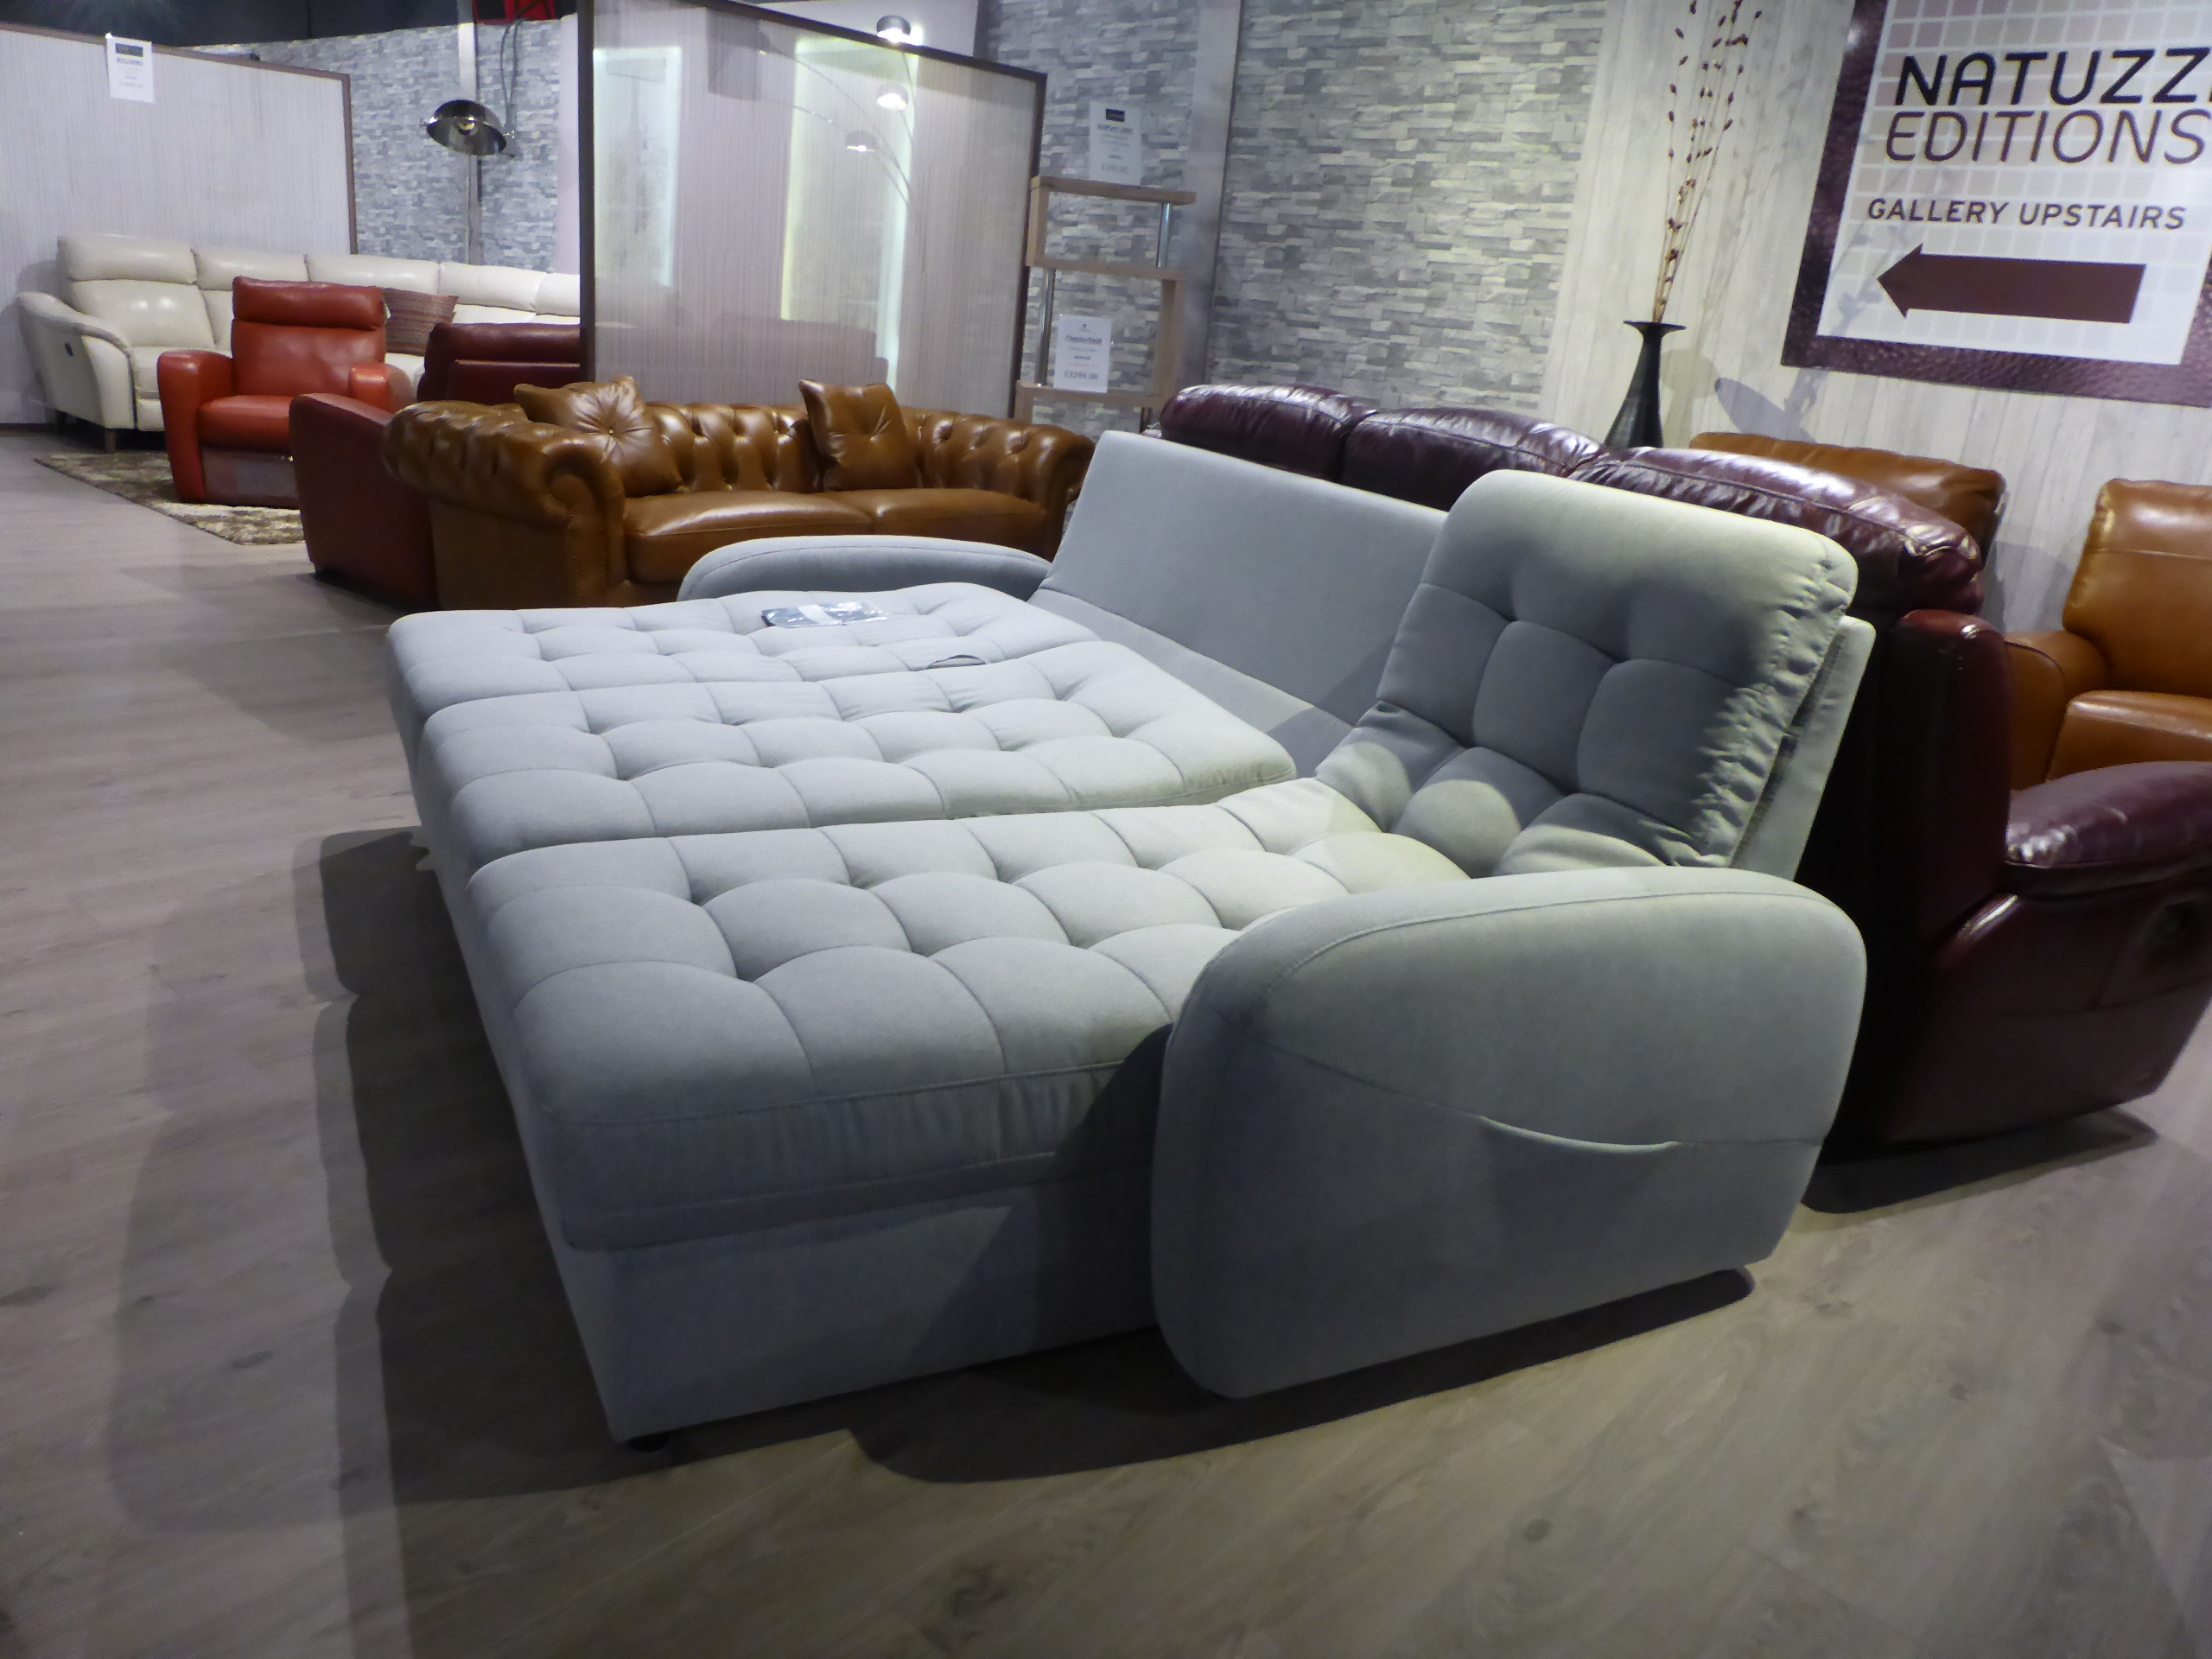 urban sofa gallery brisbane milari linen set natuzzi clearance stock if your looking for a versatile comfortable with sofabed then look no further incredible price 1399 can also be ordered in other cloths orleather